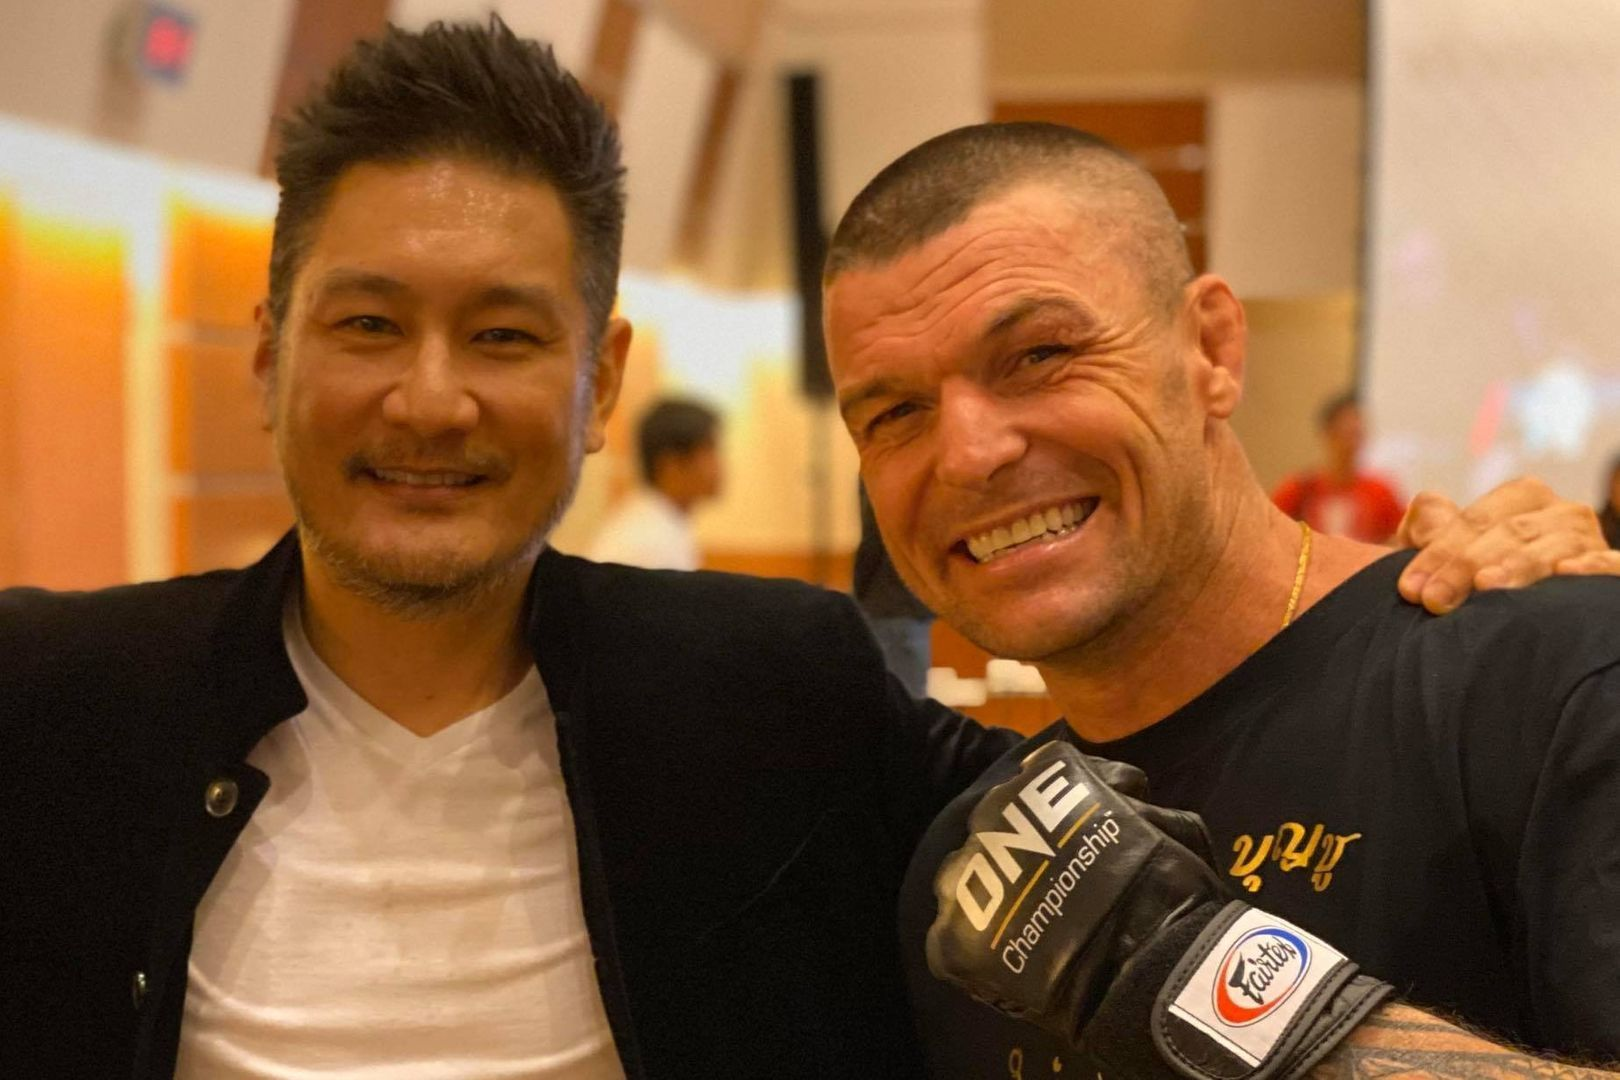 John Wayne Parr signs with ONE Championship